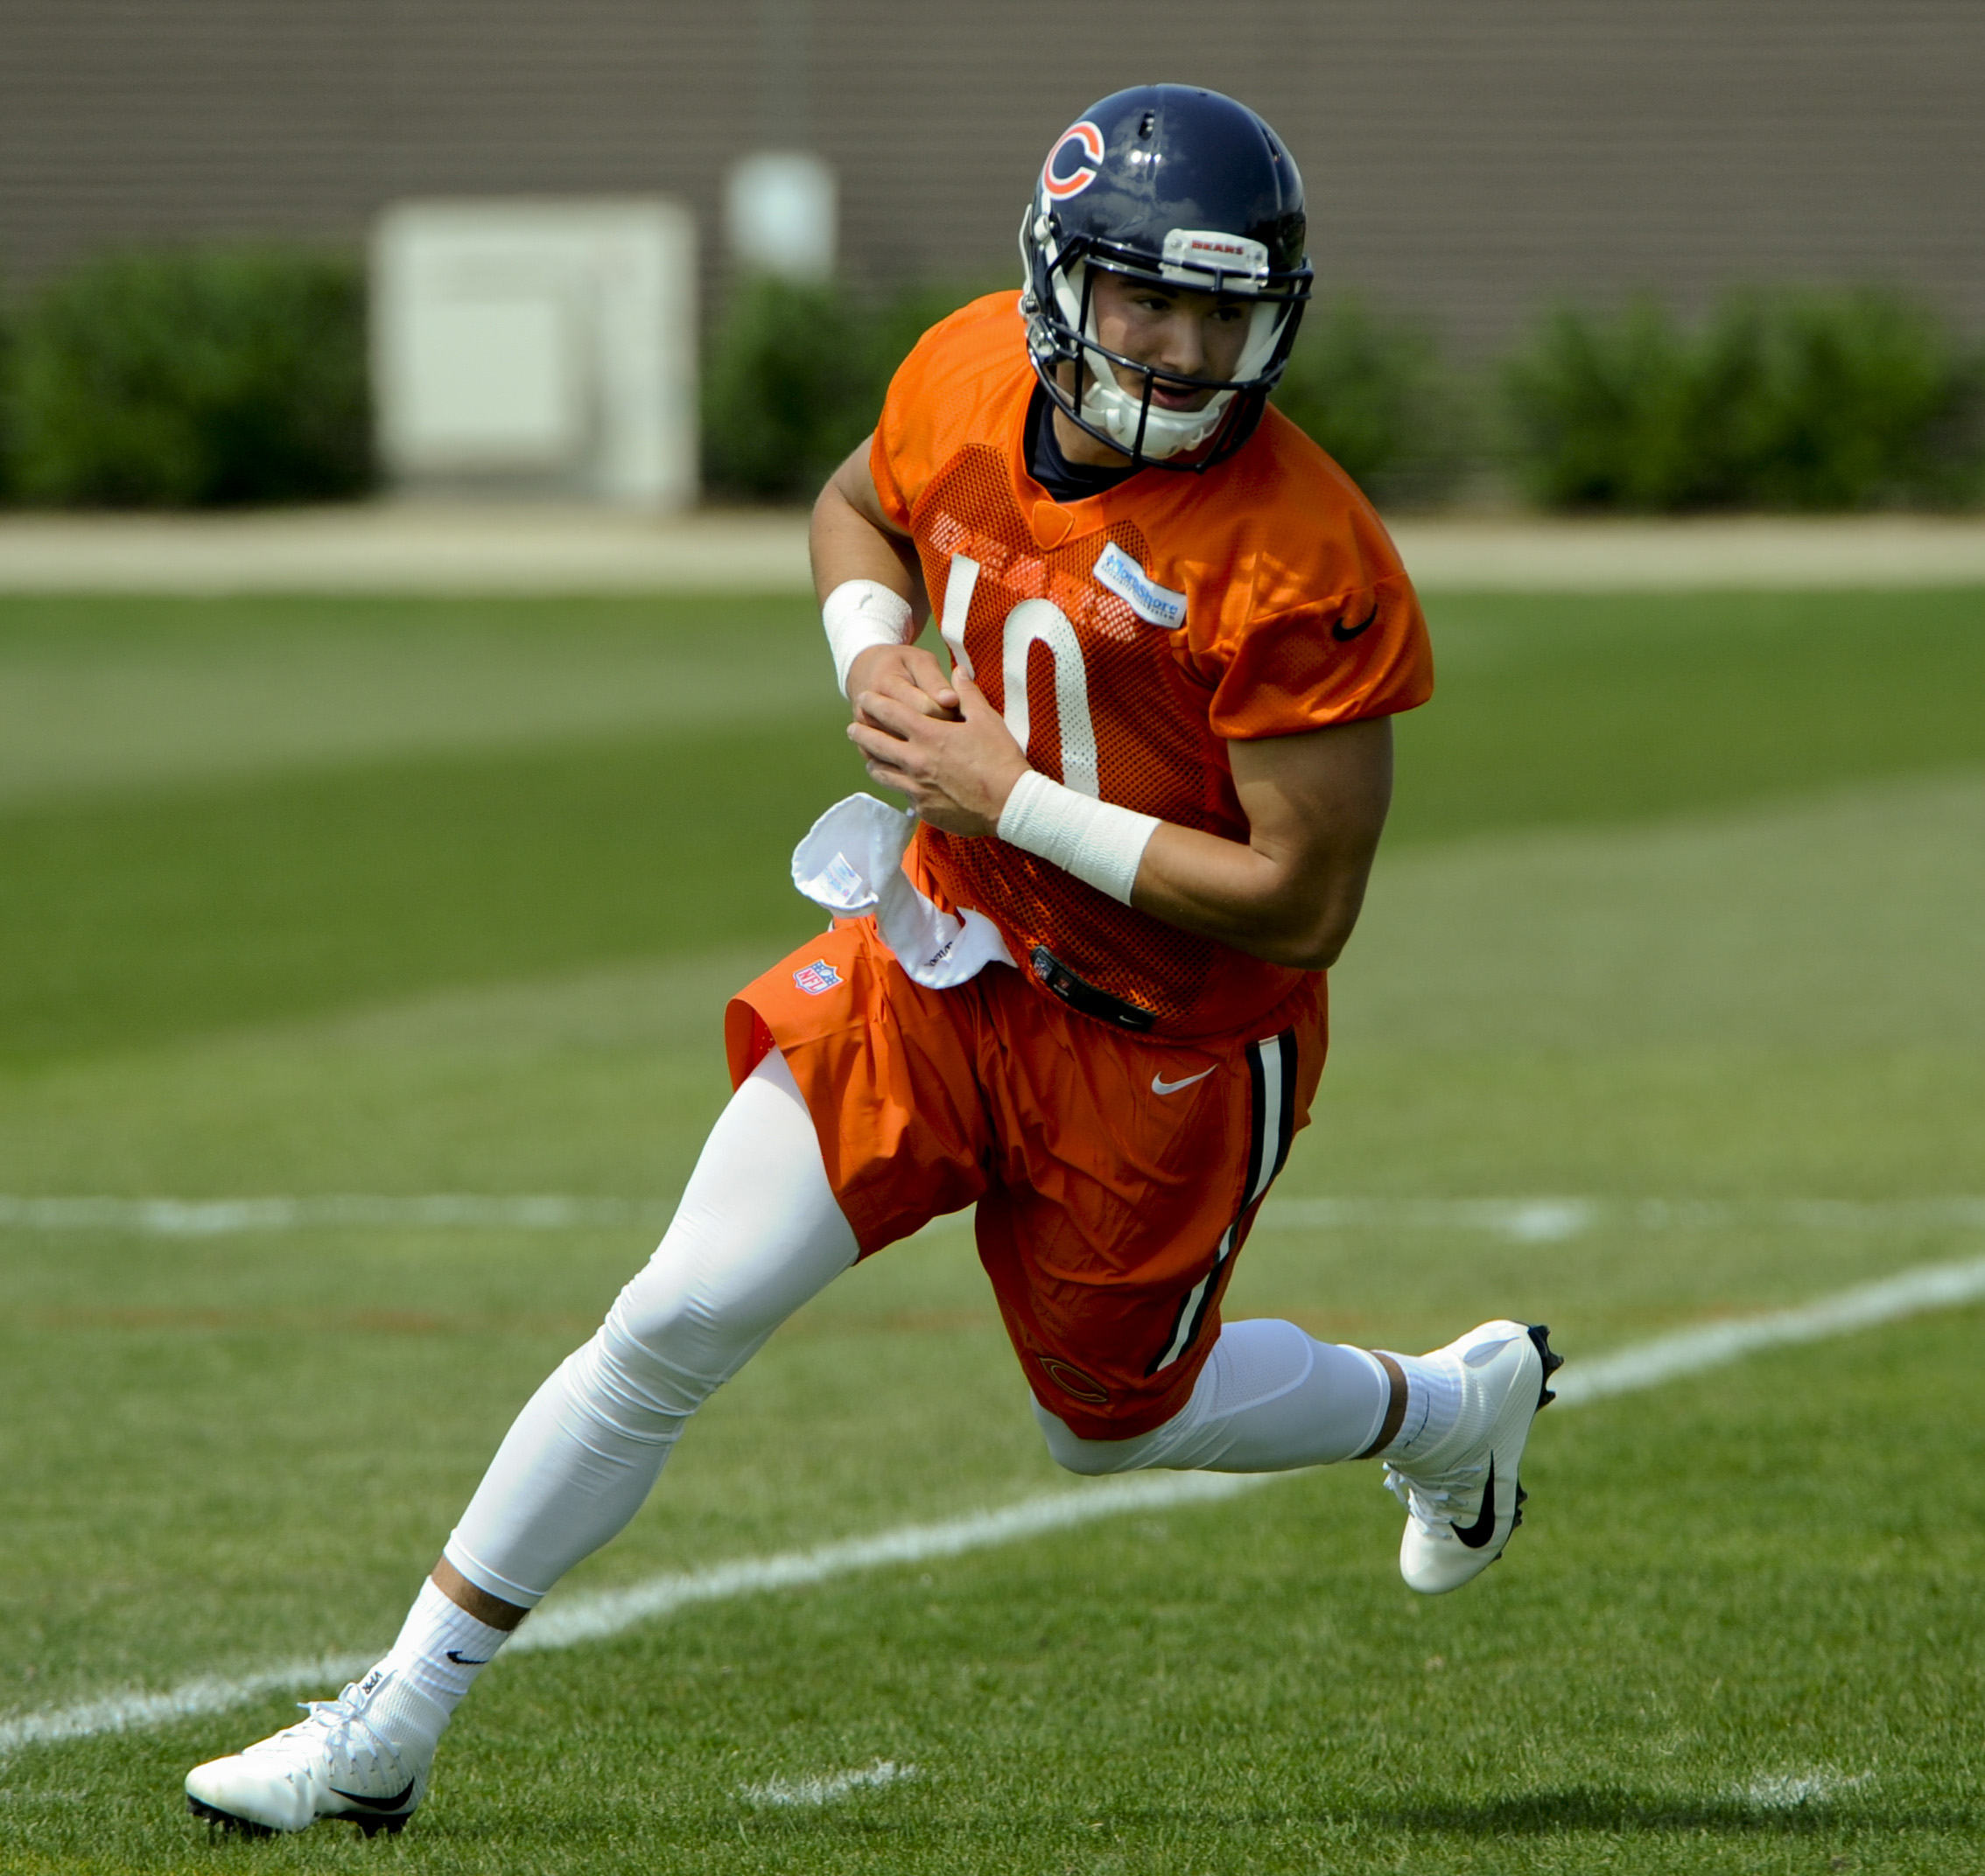 10062405-nfl-chicago-bears-rookie-minicamp